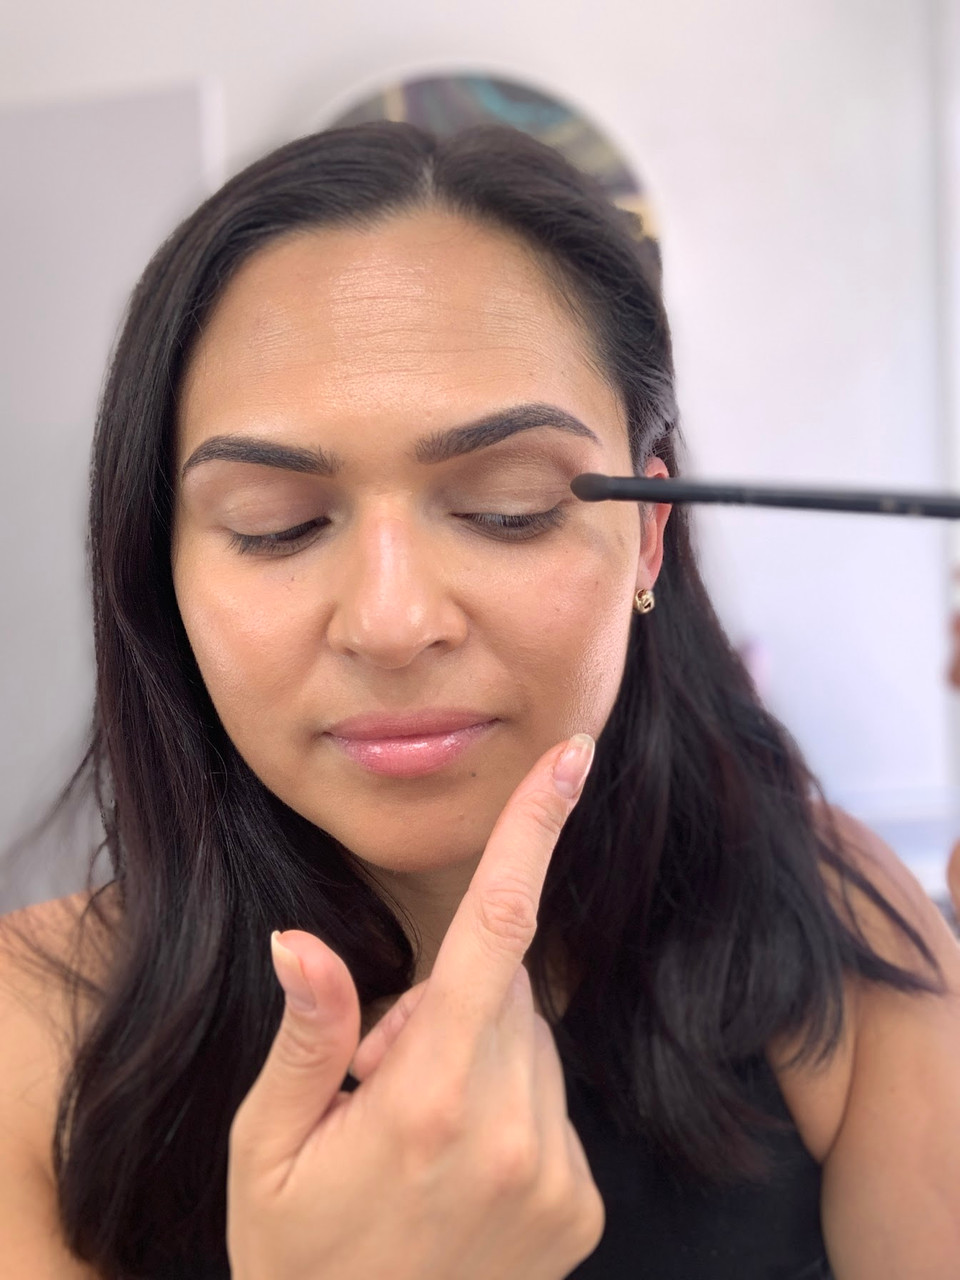 TIP TUESDAY: Eyeshadow application for hooded eyeS